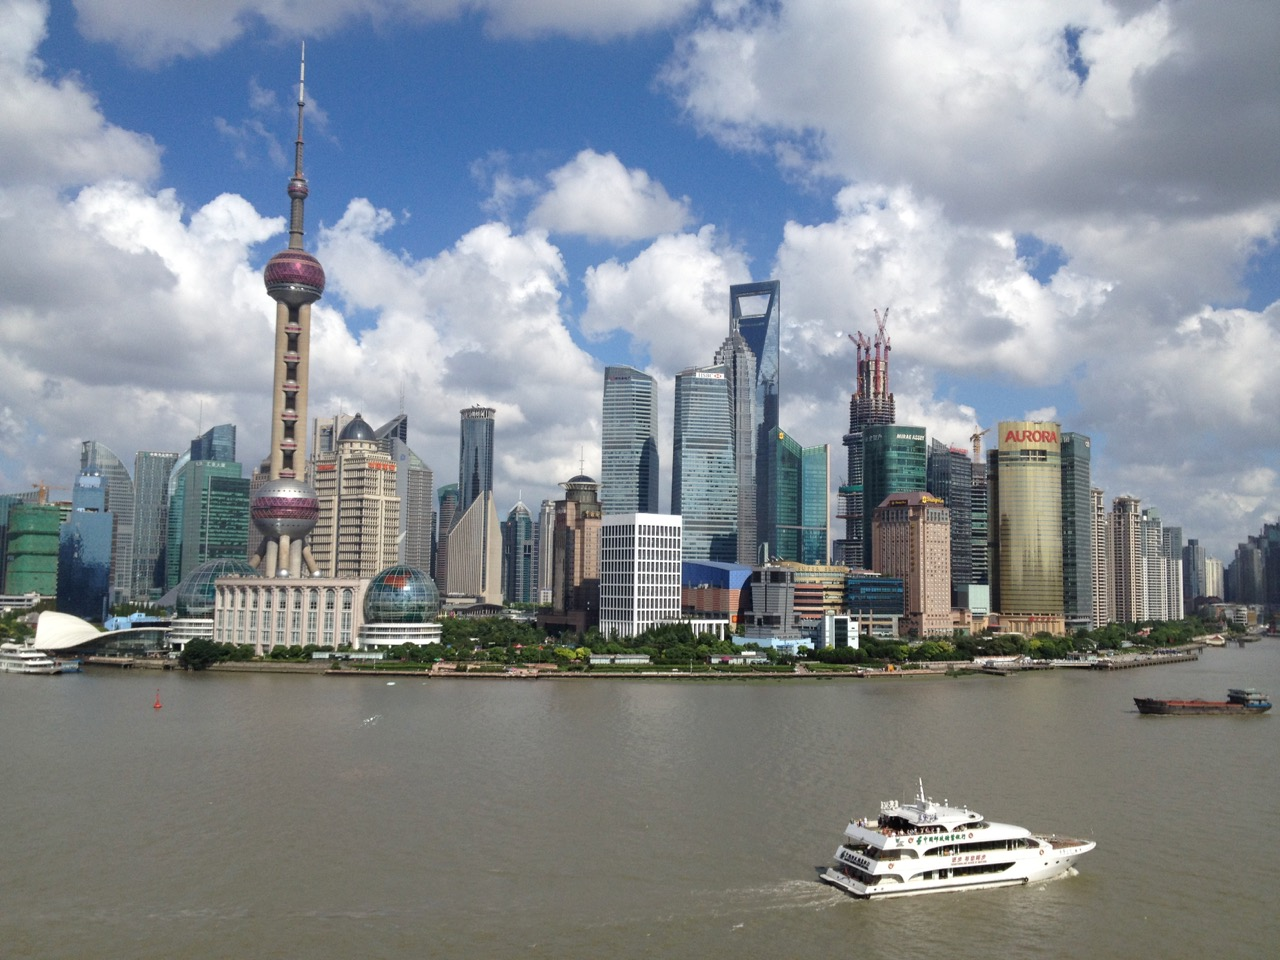 Ok, so I've resurrected a photo I shot a few years ago of a scene looking over the Huangpu River toward the Pudong skyline, which you'd expect to see when somebody writes about Shanghai. Notice that the Shanghai Tower, which now dominates the skyline, was then still under construction. Changes and vicissitudes.